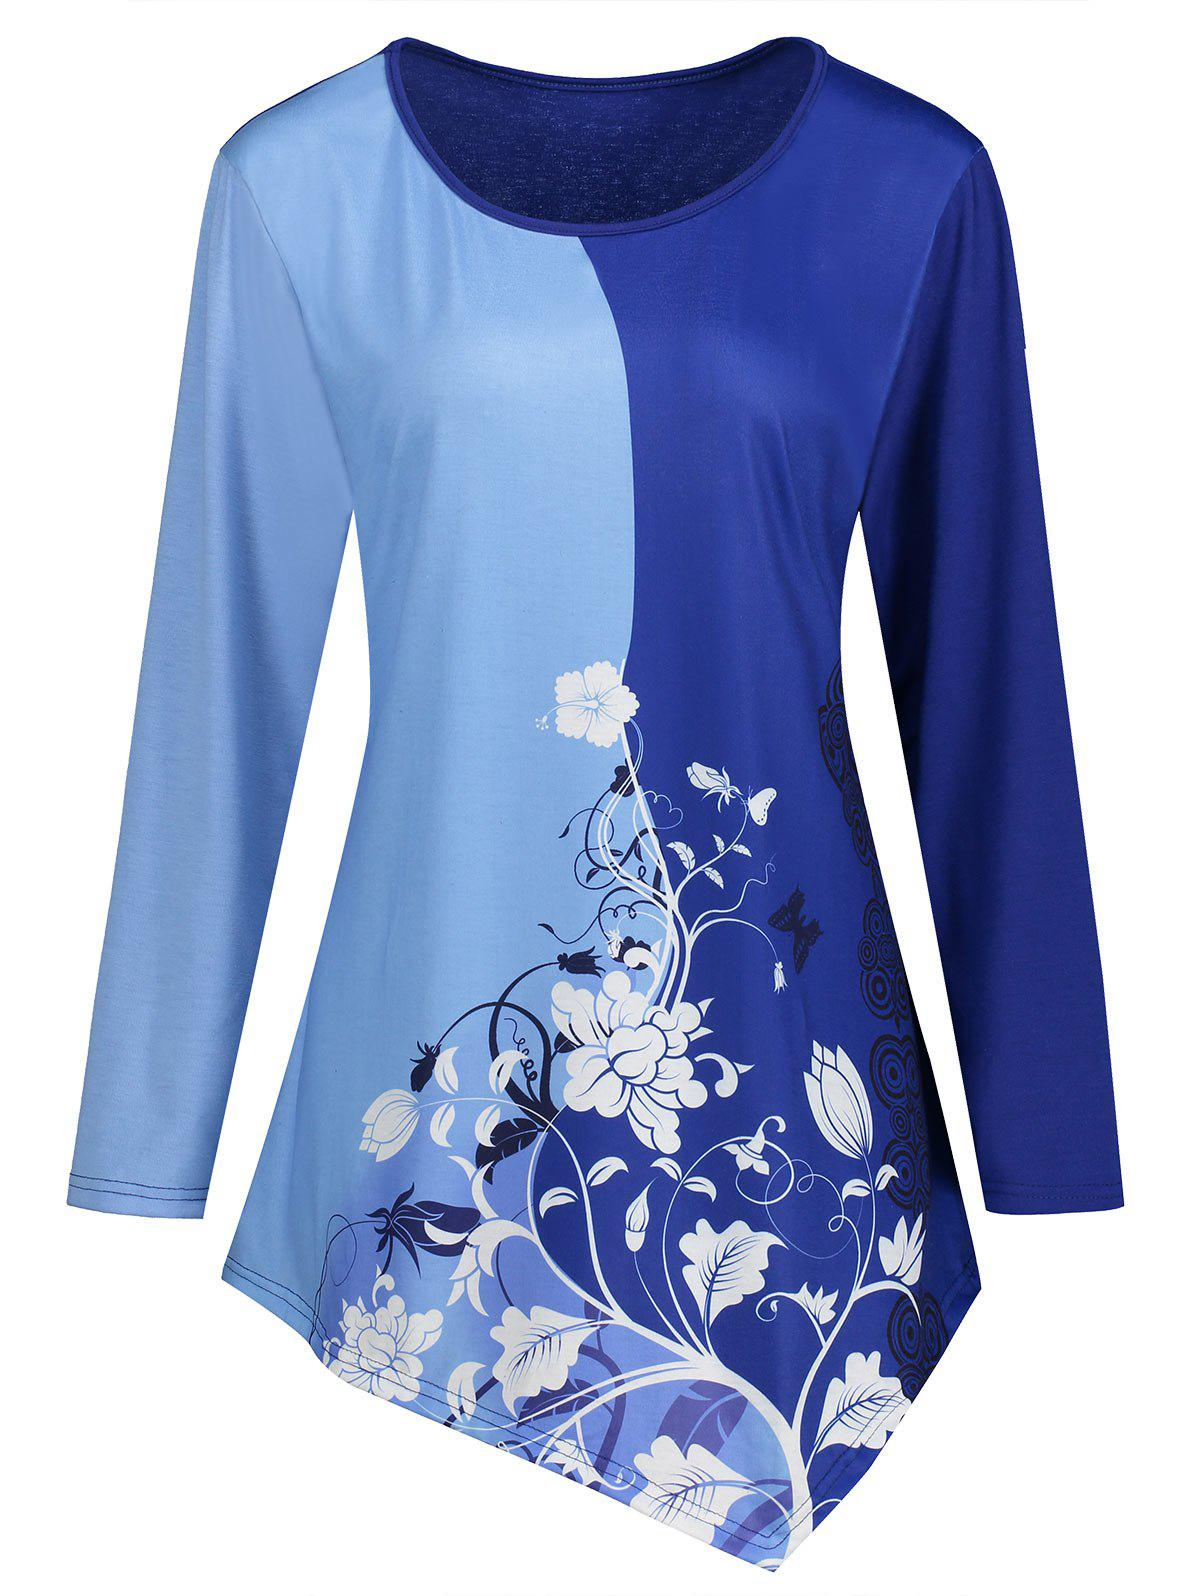 Floral Print Two Tone Asymmetrical Plus Size T-shirt, Blue